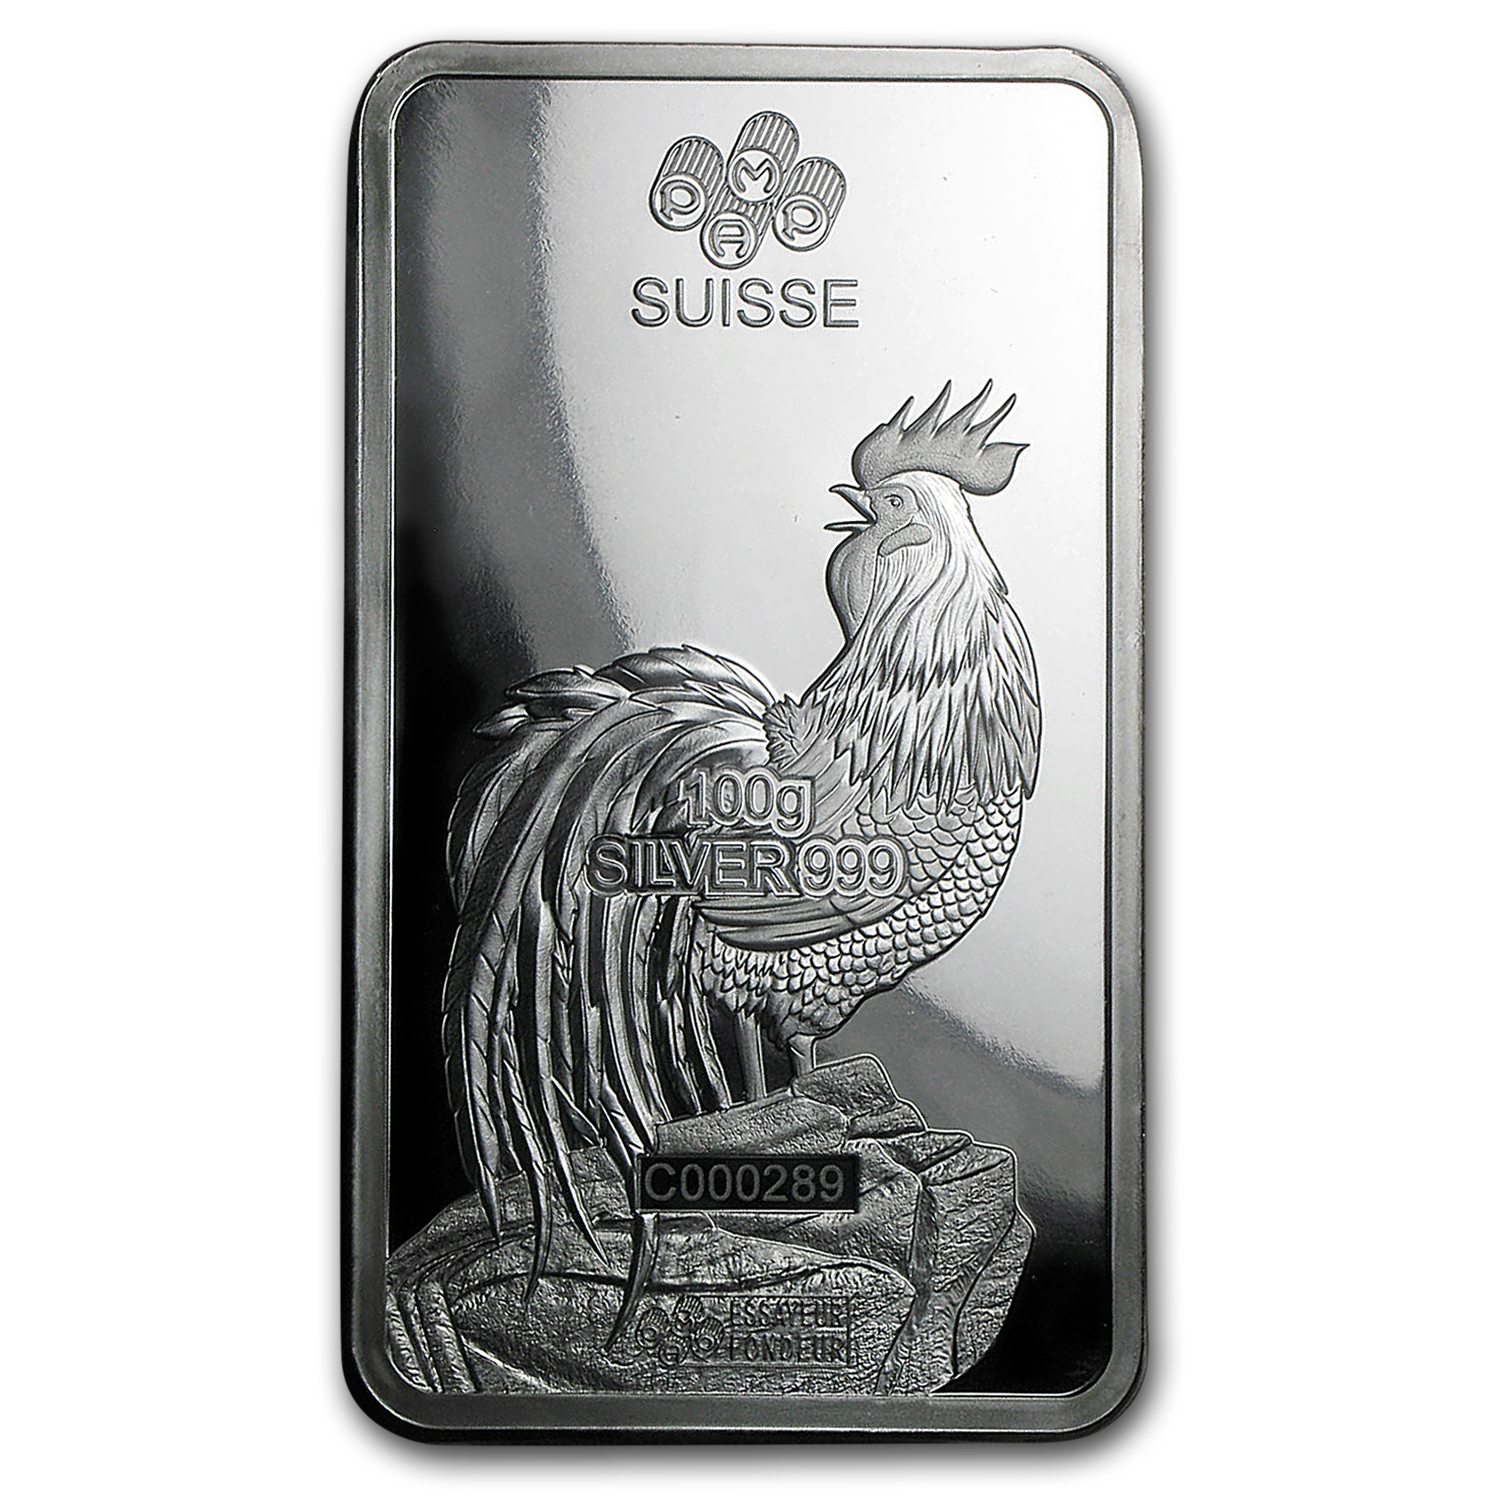 100 gram Silver Bar - PAMP Suisse (Year of the Rooster)